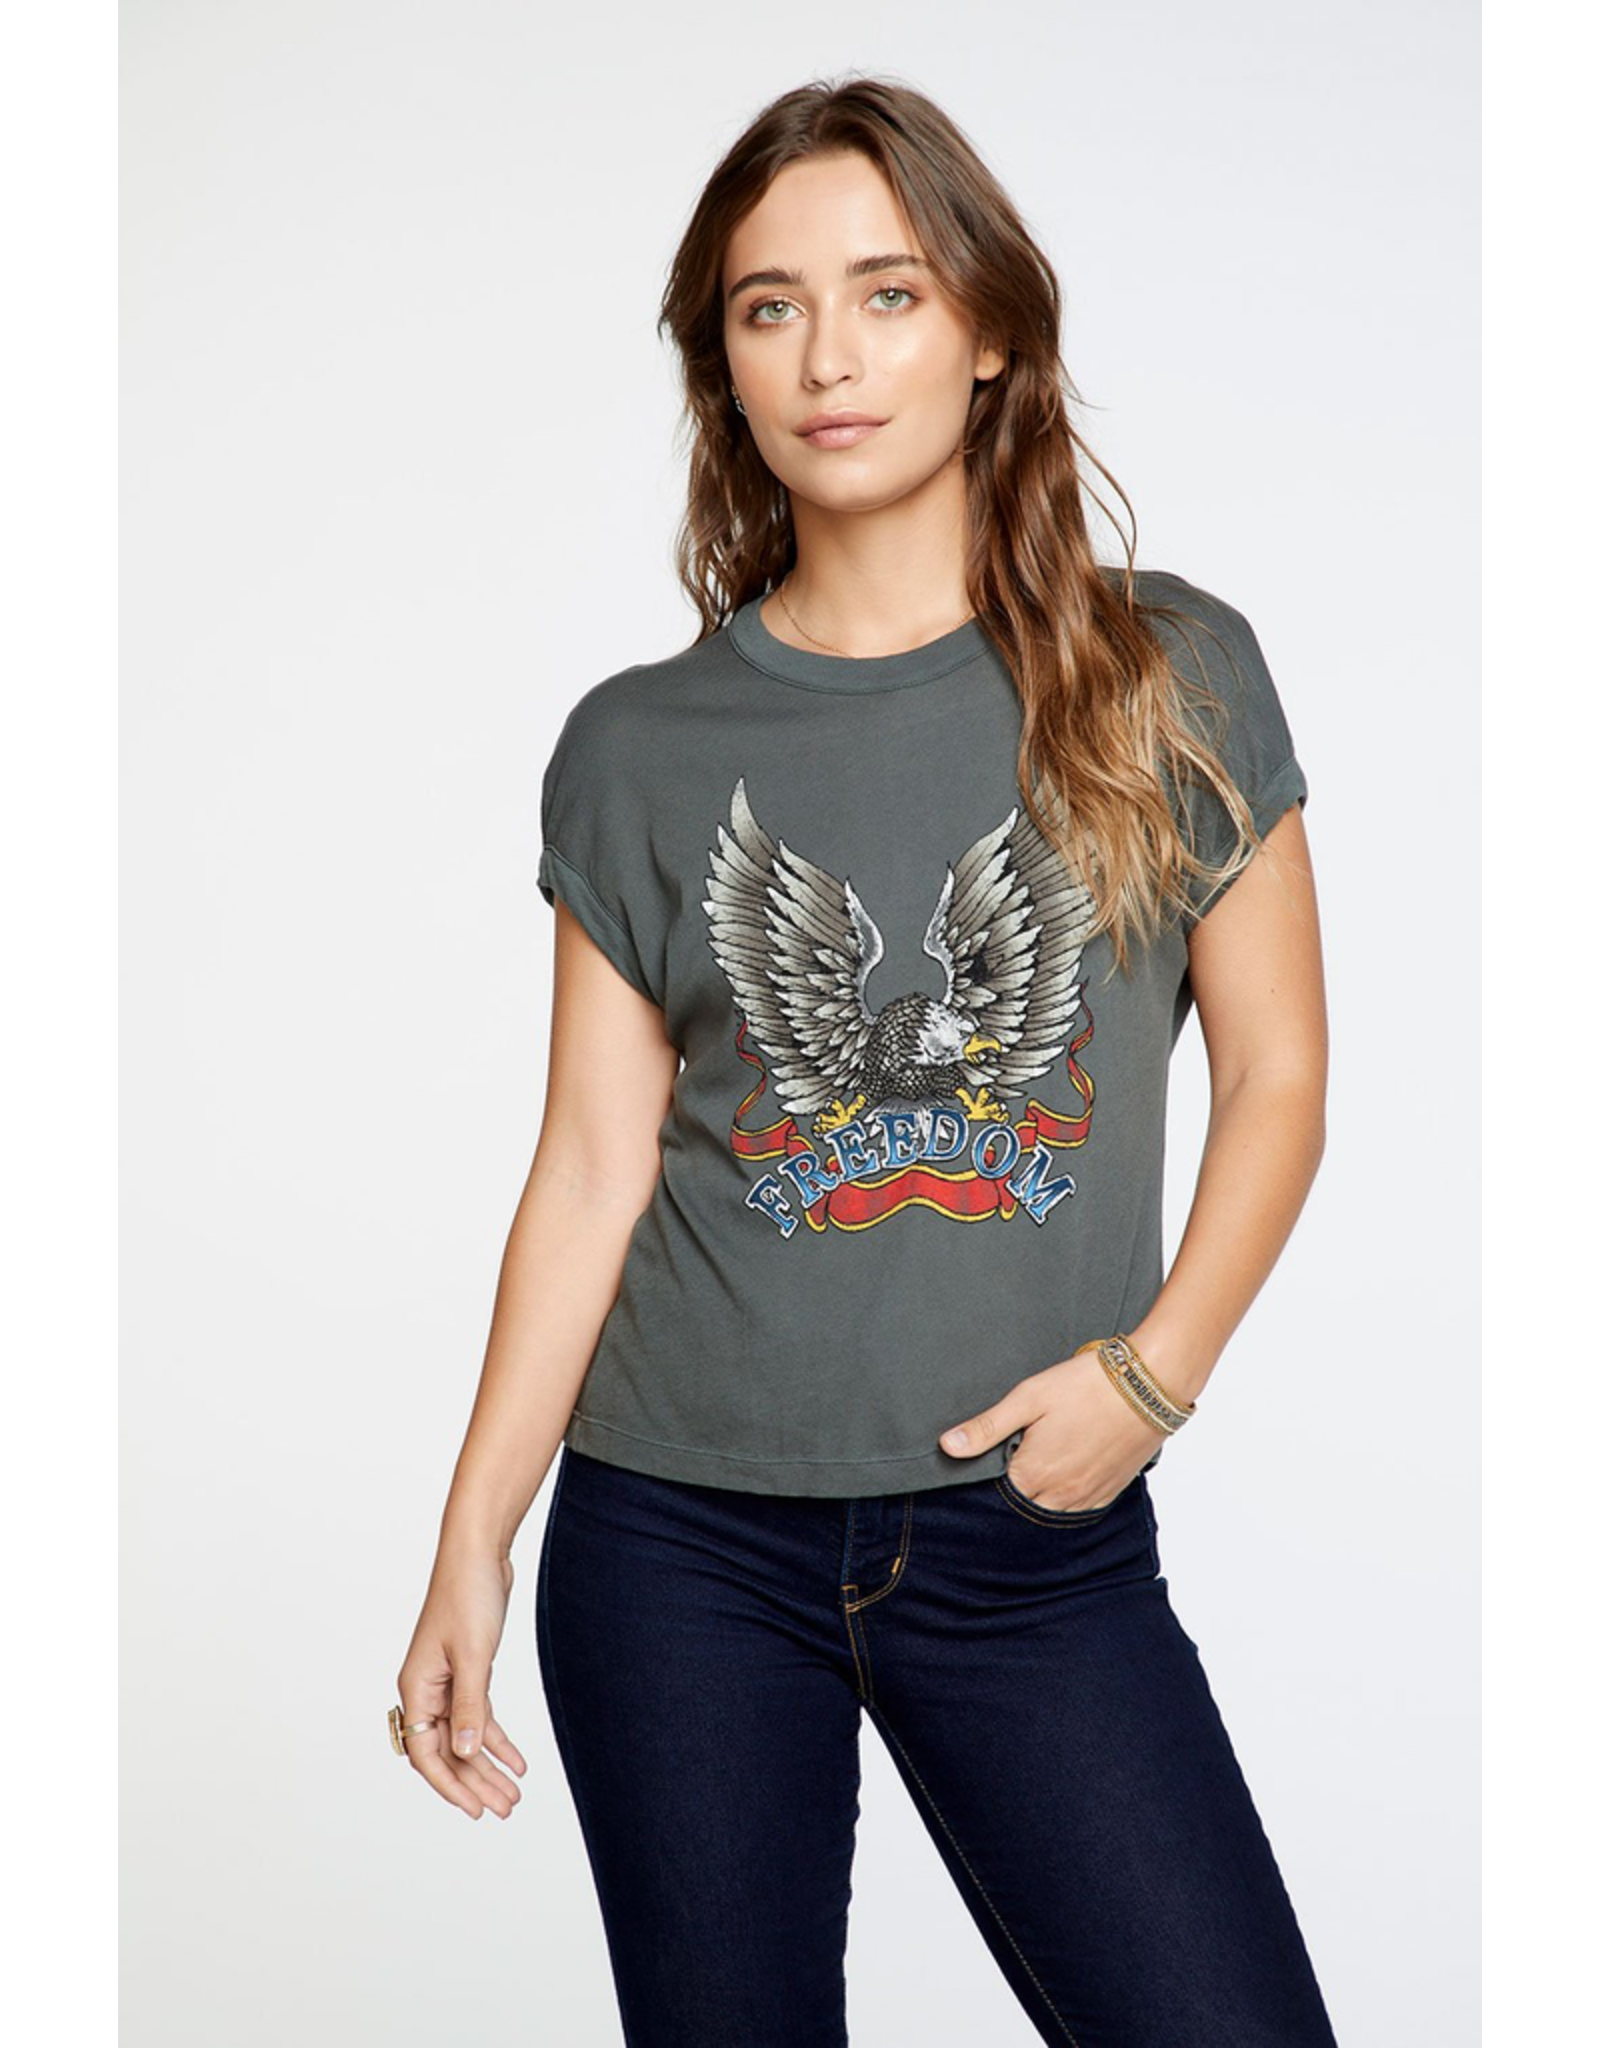 chaser chaser freedom eagle tee